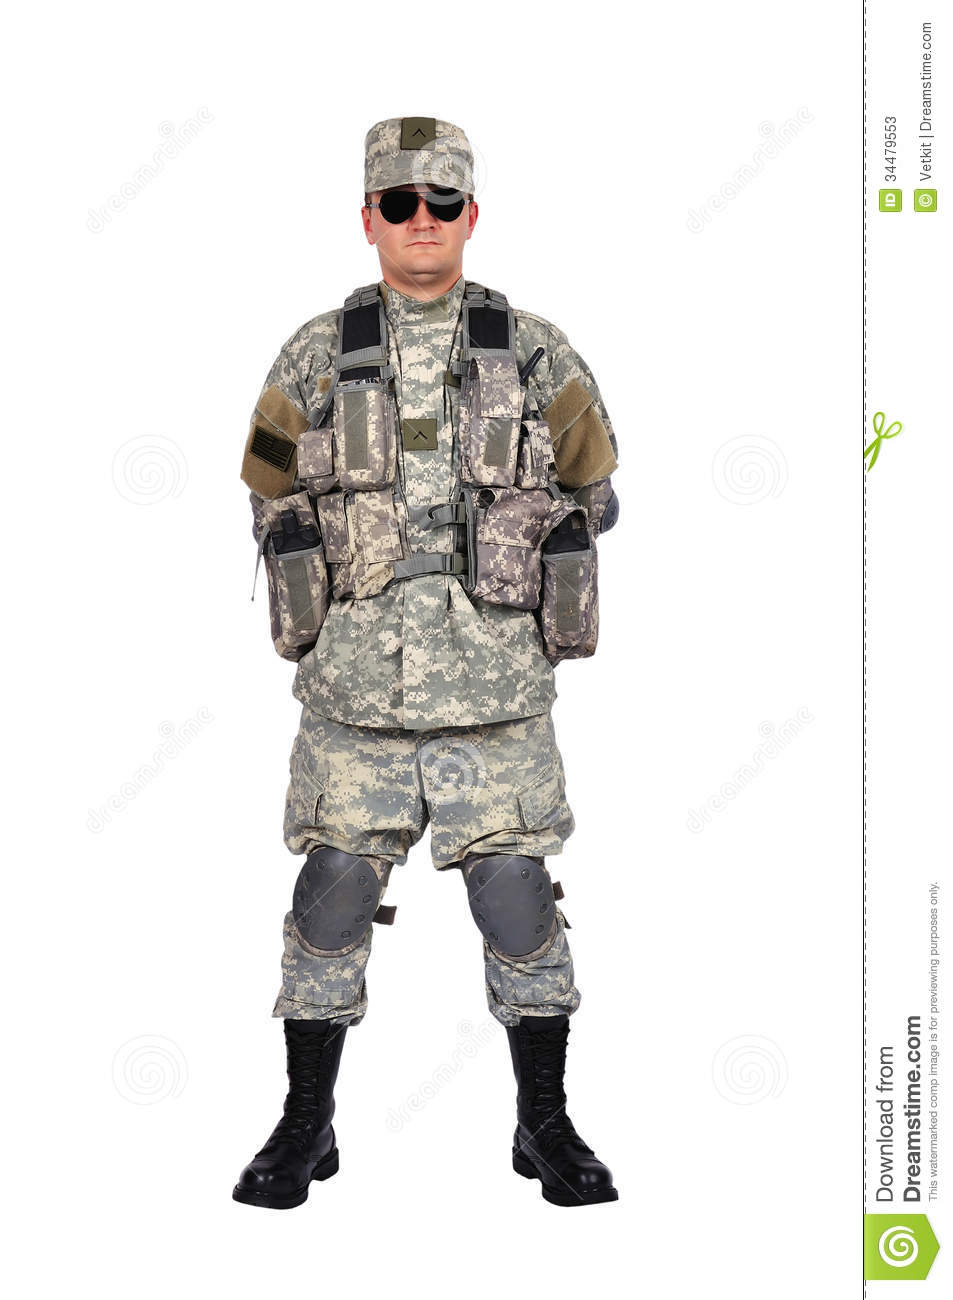 US Soldier Stock Photos - Image: 34479553